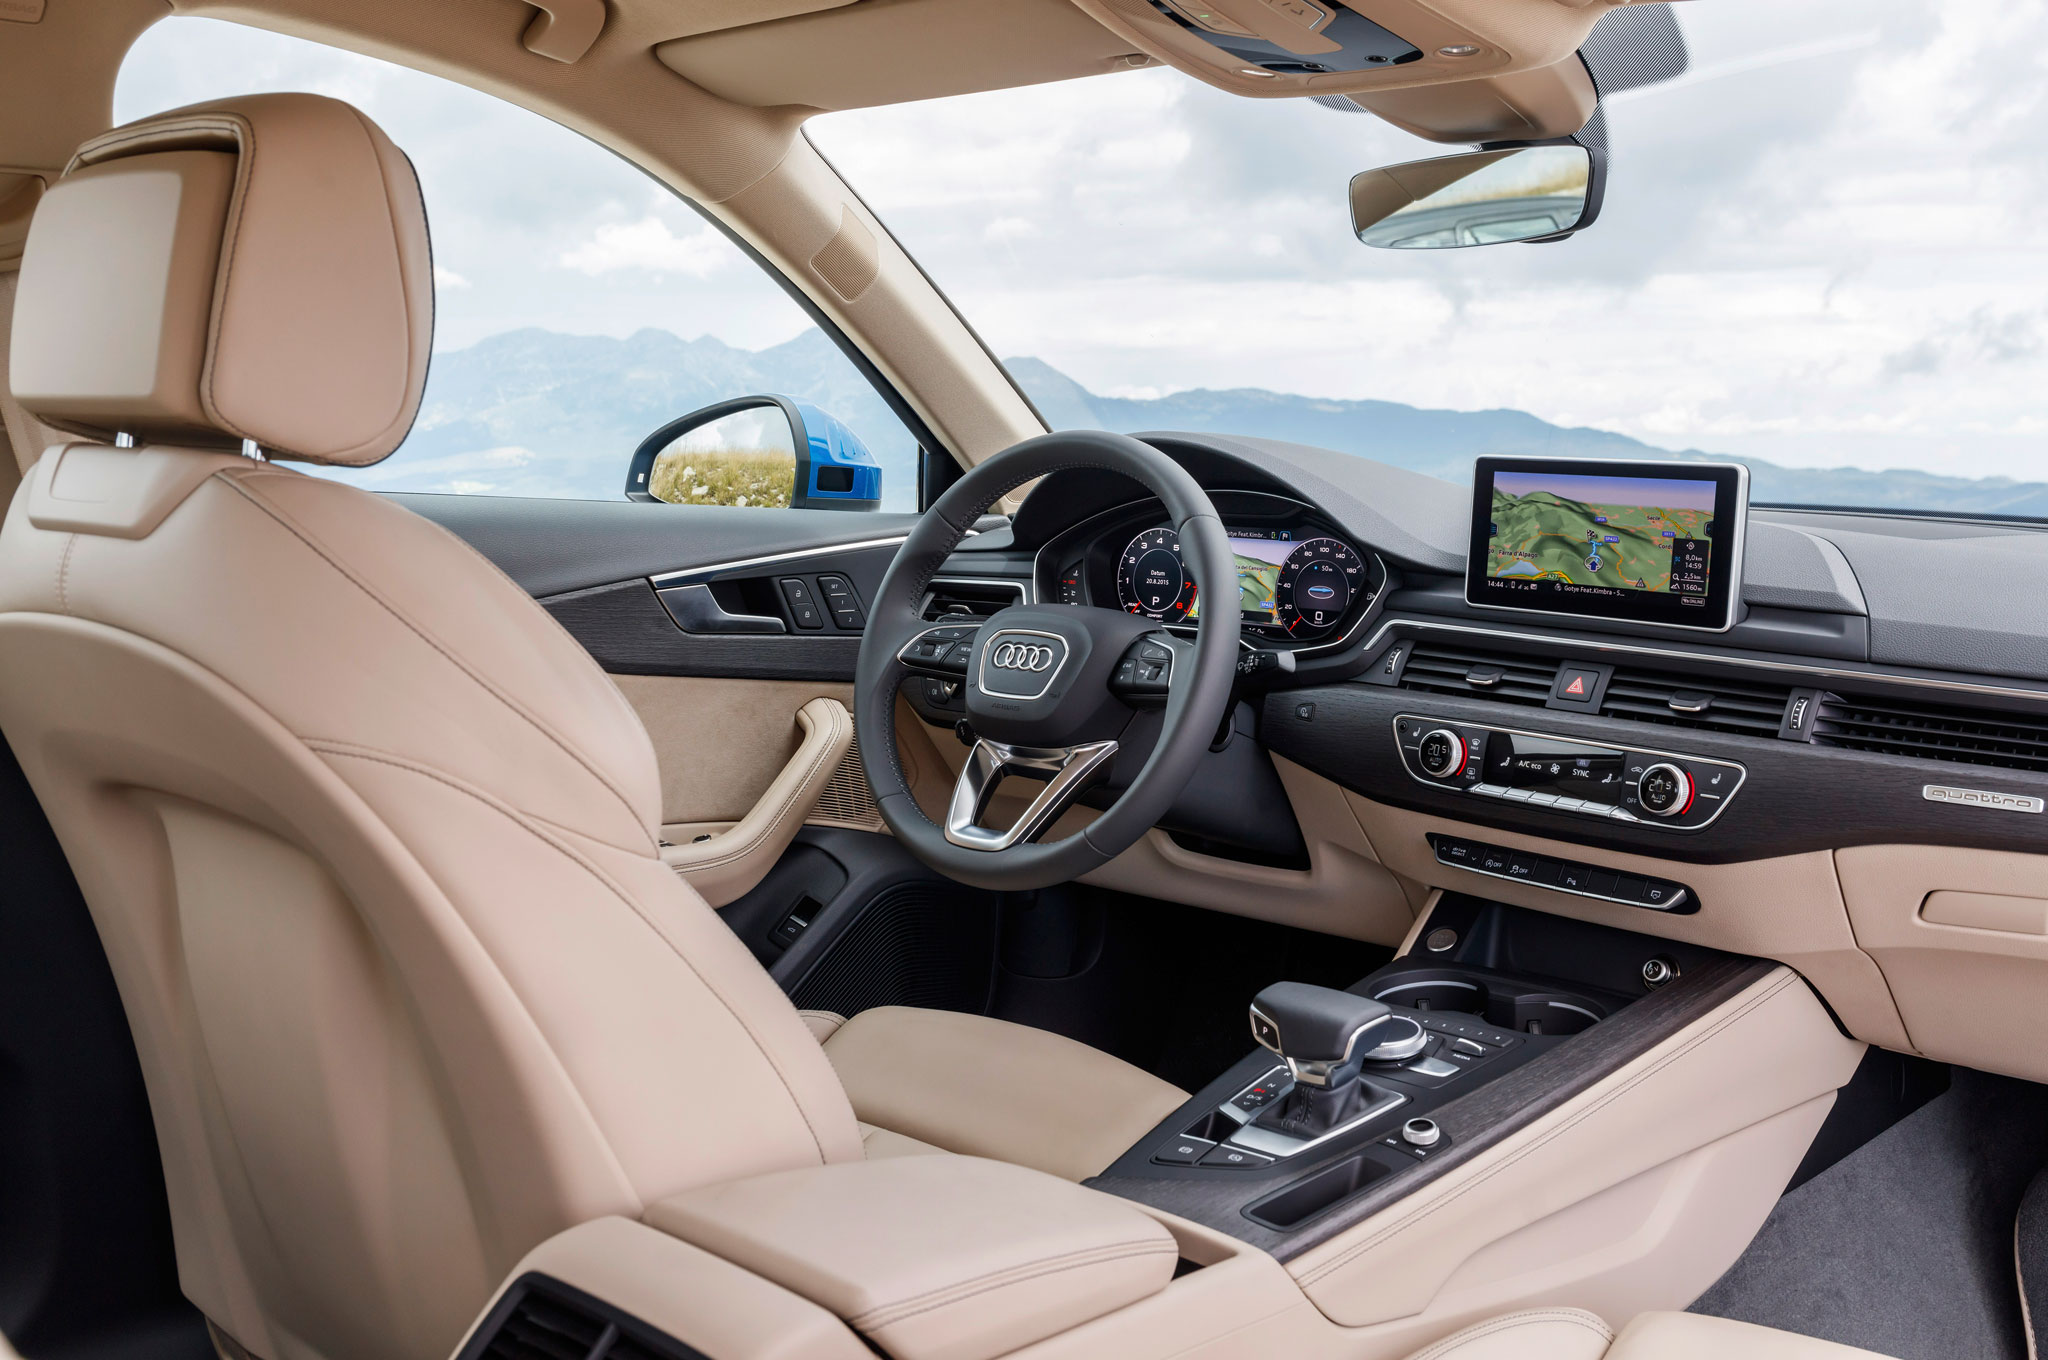 2017-audi-a4-interior-from-back-seat